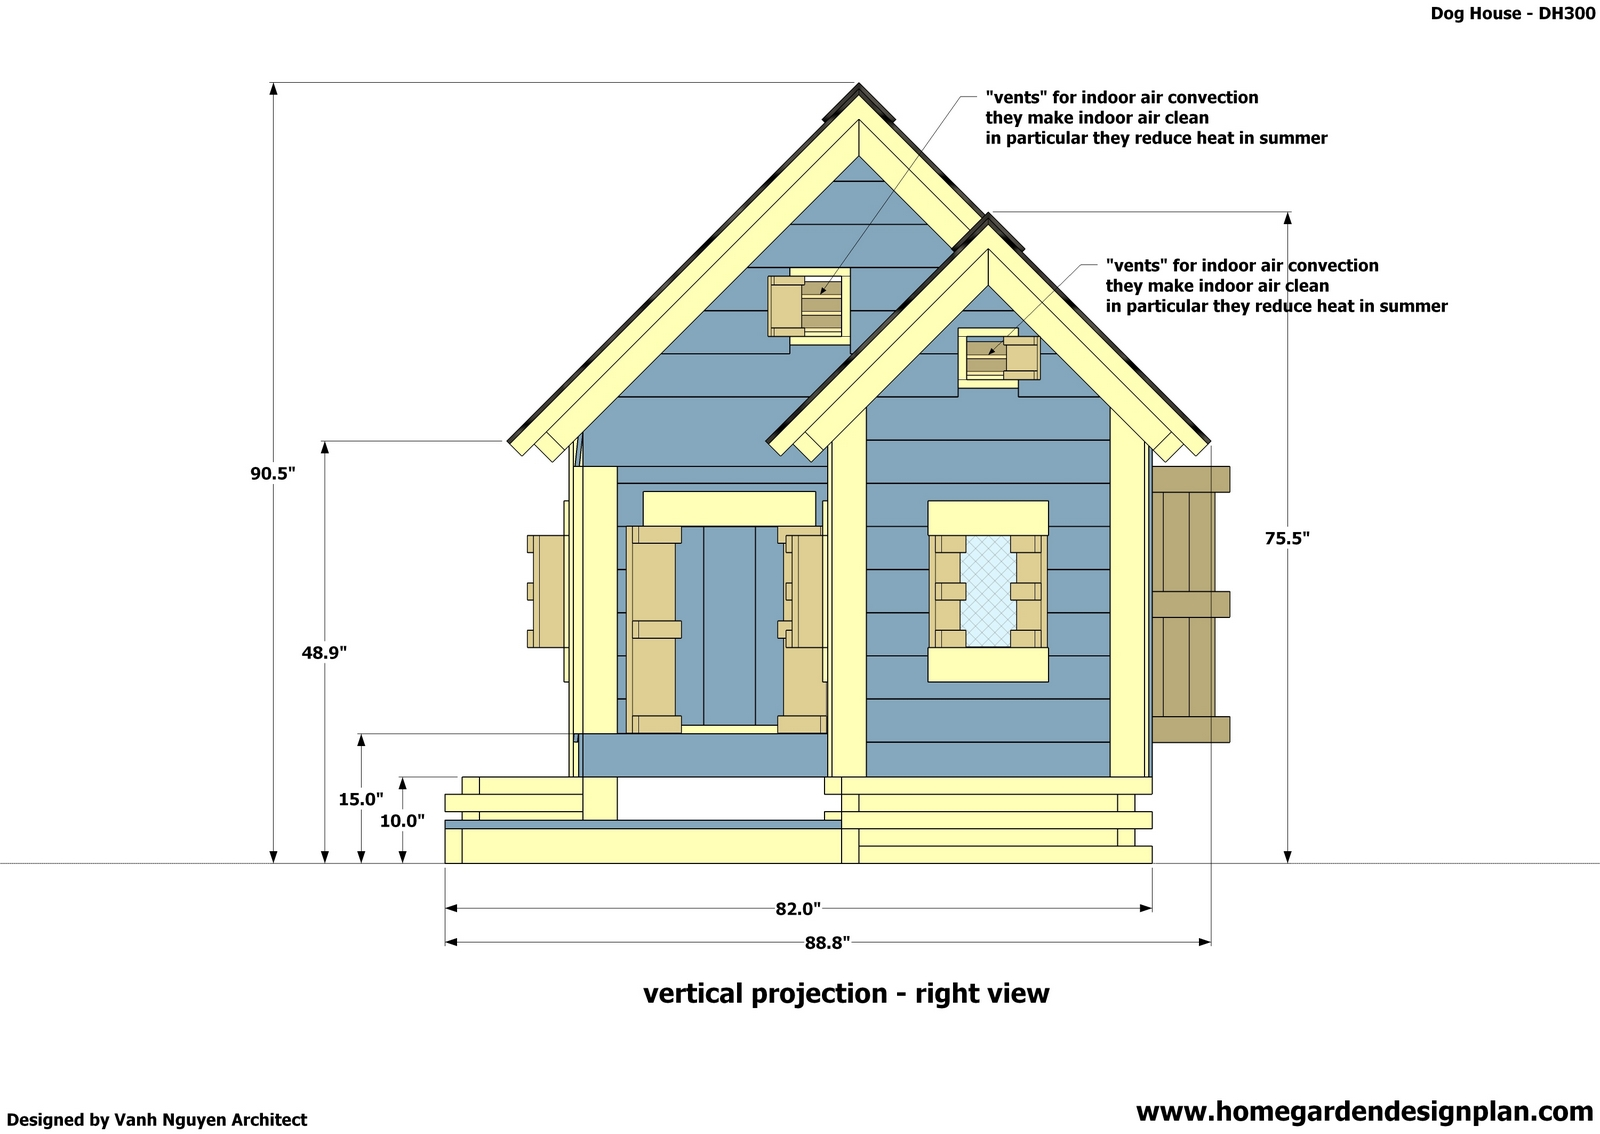 Home garden plans dh300 dog house plans free how to Free home plans